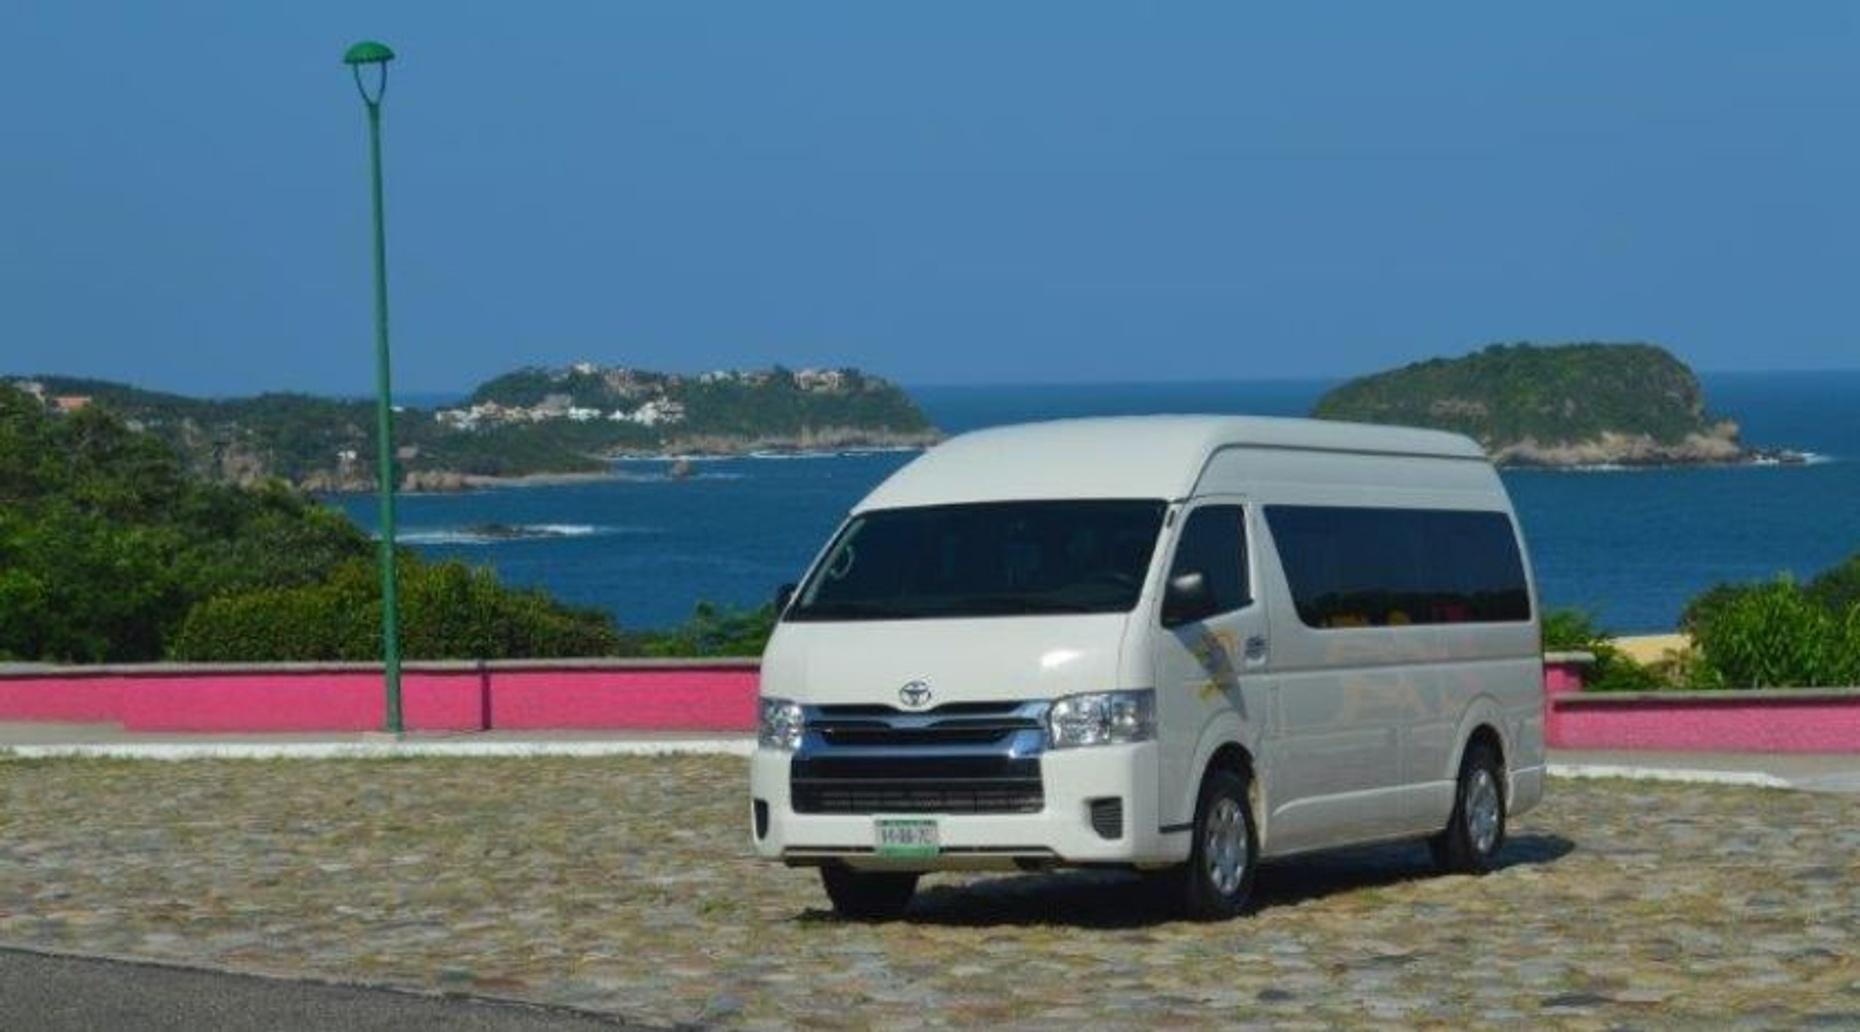 Transfer to Salina Cruz Surf Camps from Huatulco International Airport